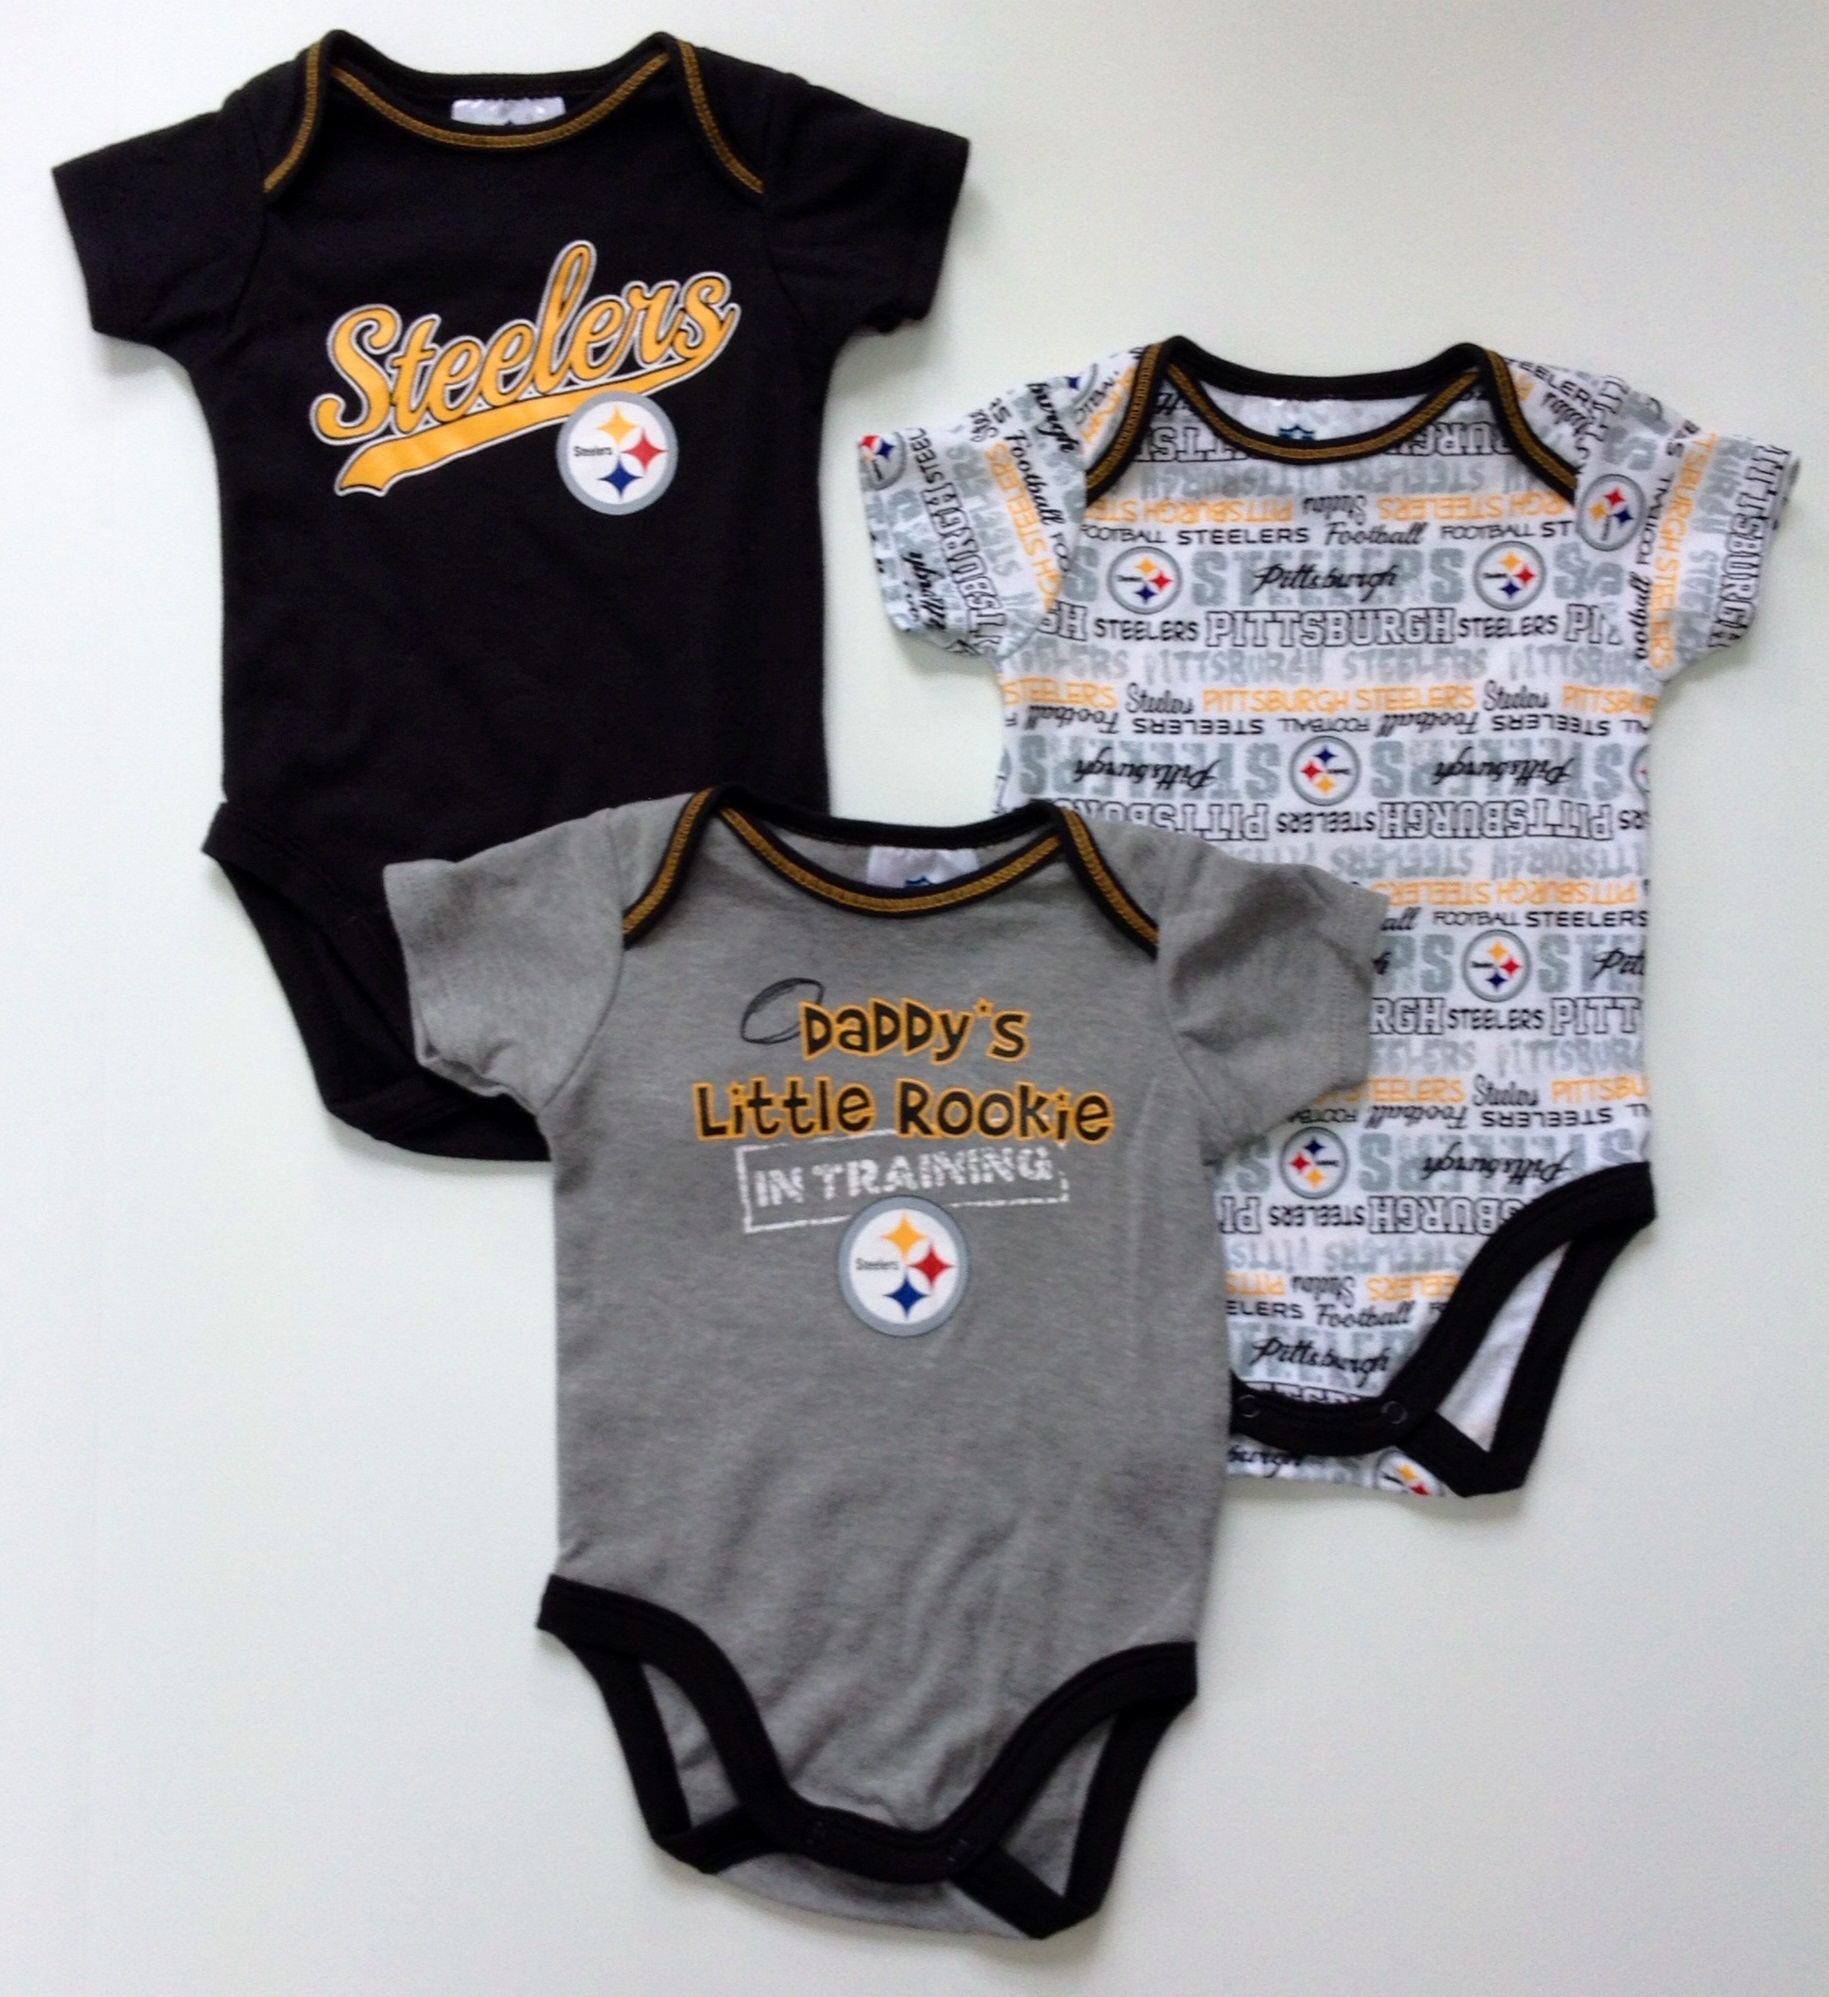 nfl-steelers-infant-onesie-3-pack-4.jpg